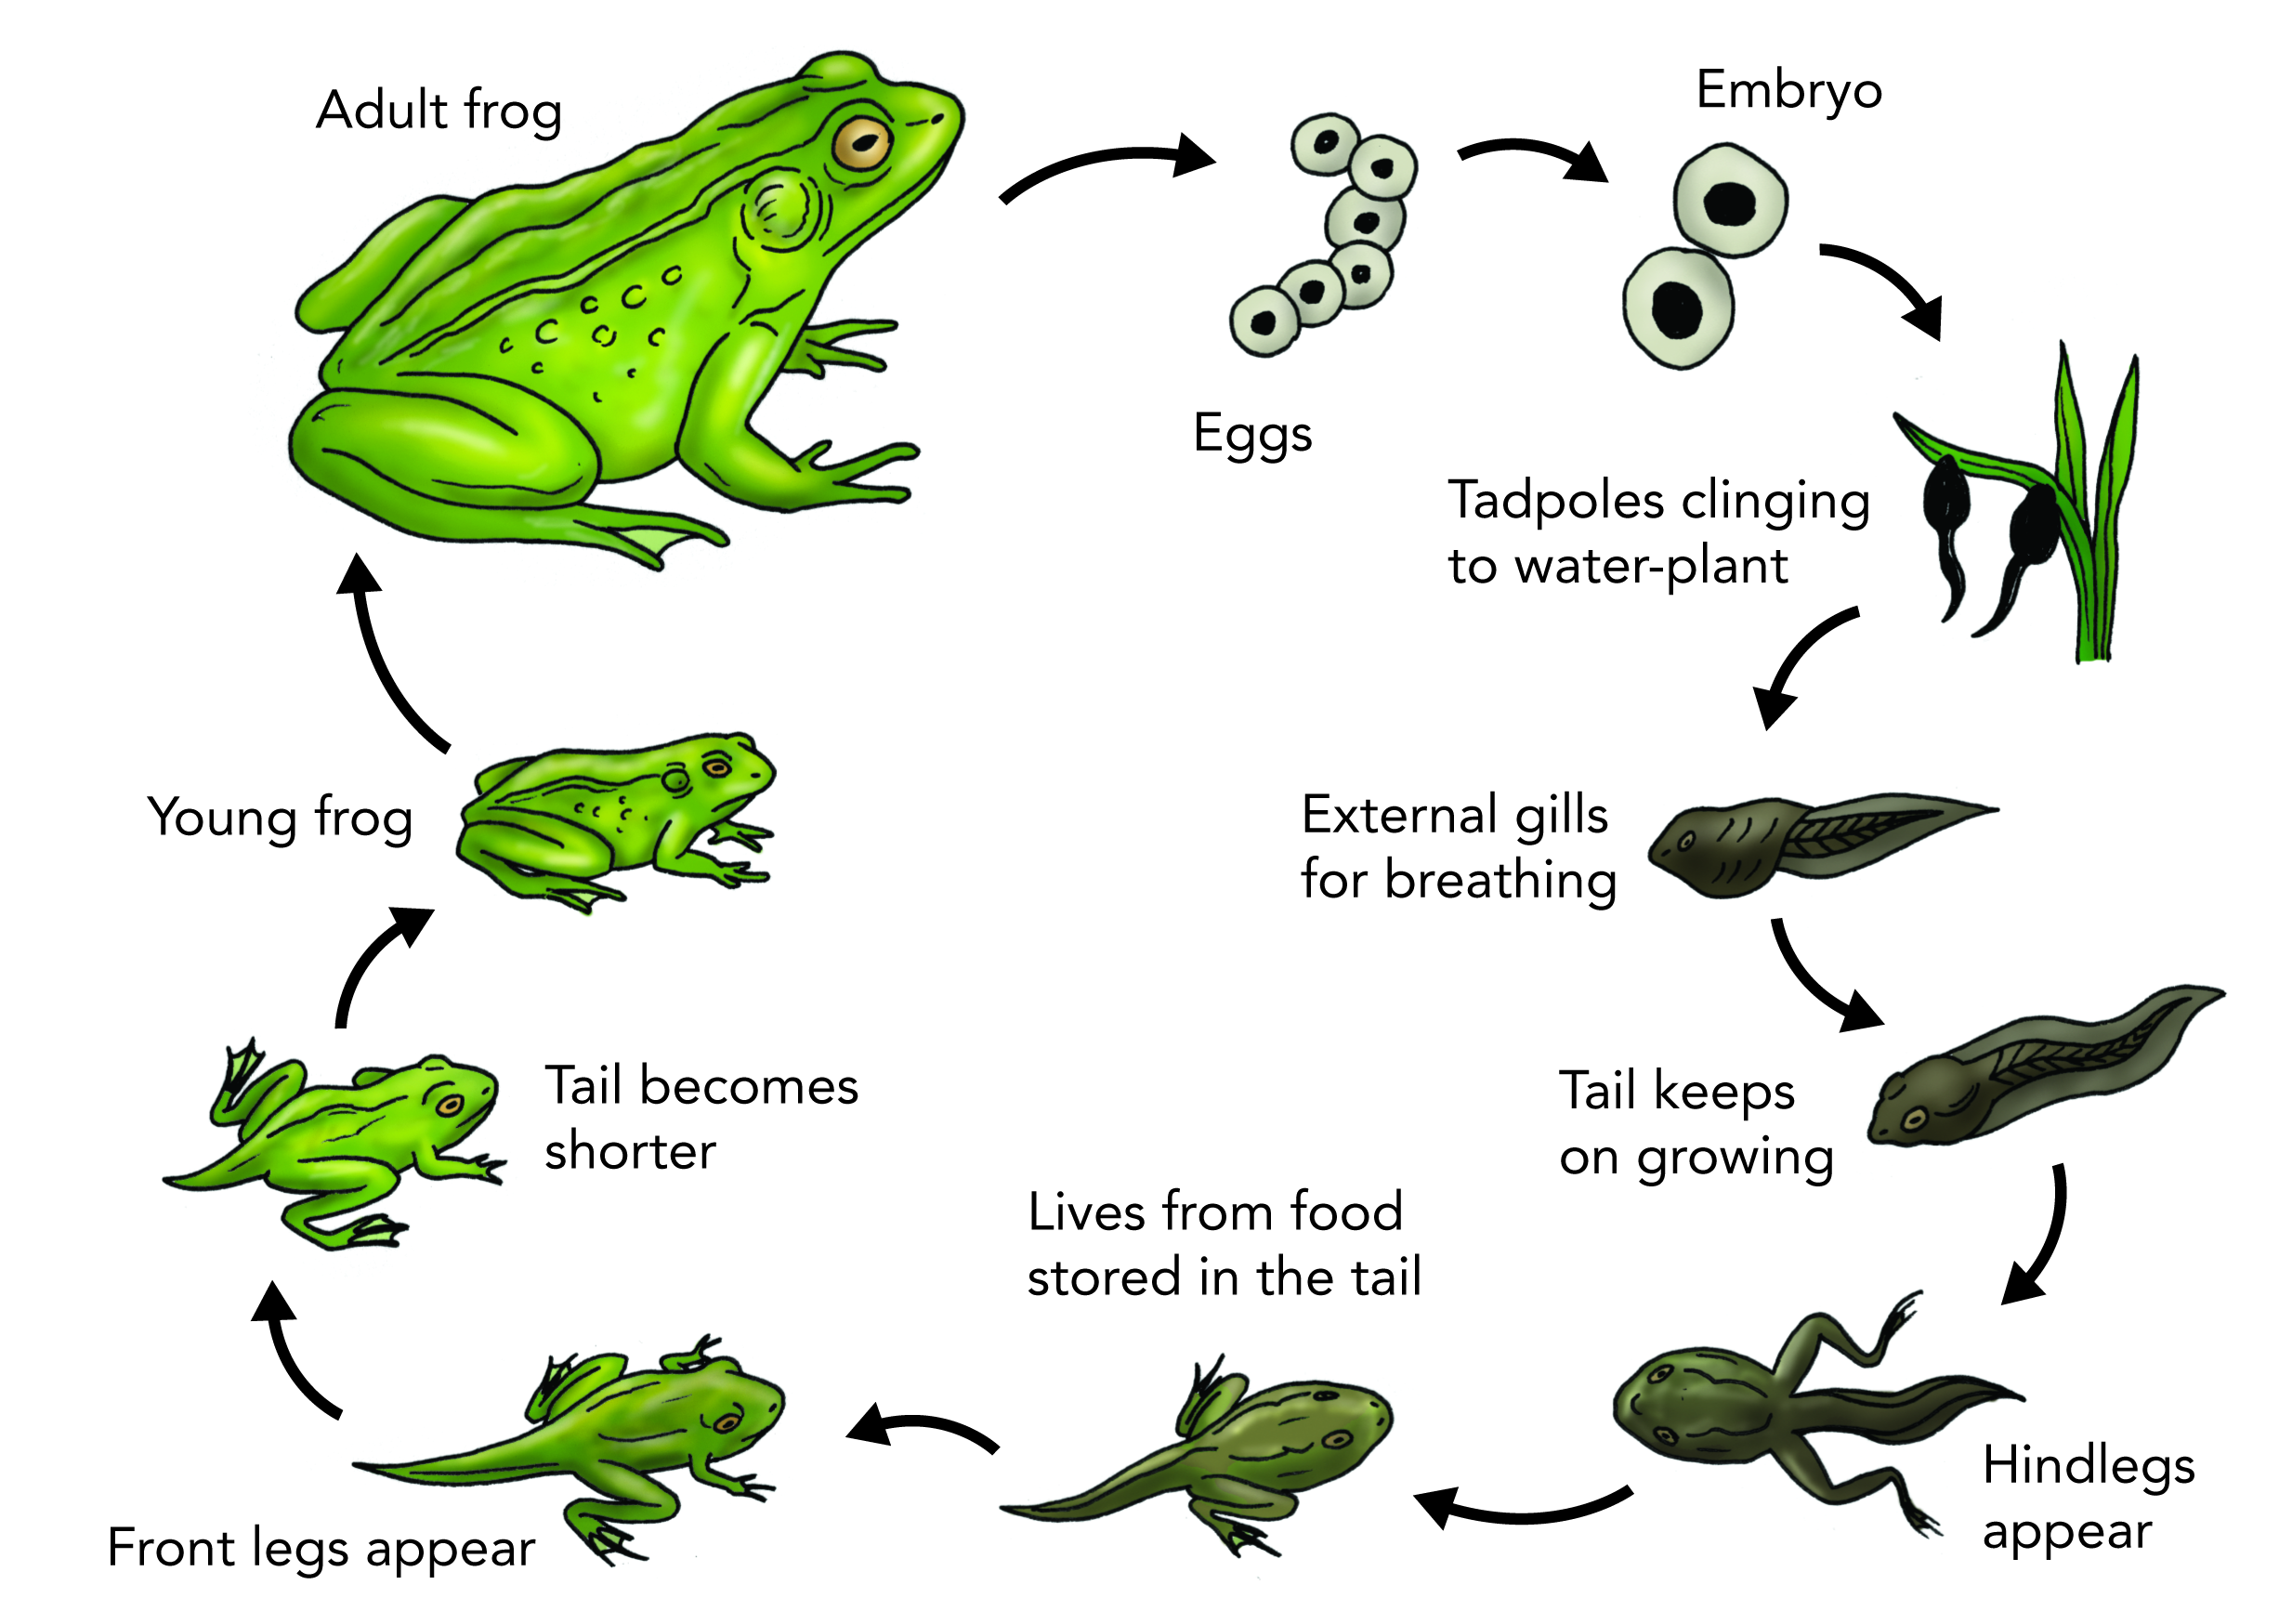 Pin by Fugara on biosphere Frog life, Lifecycle of a